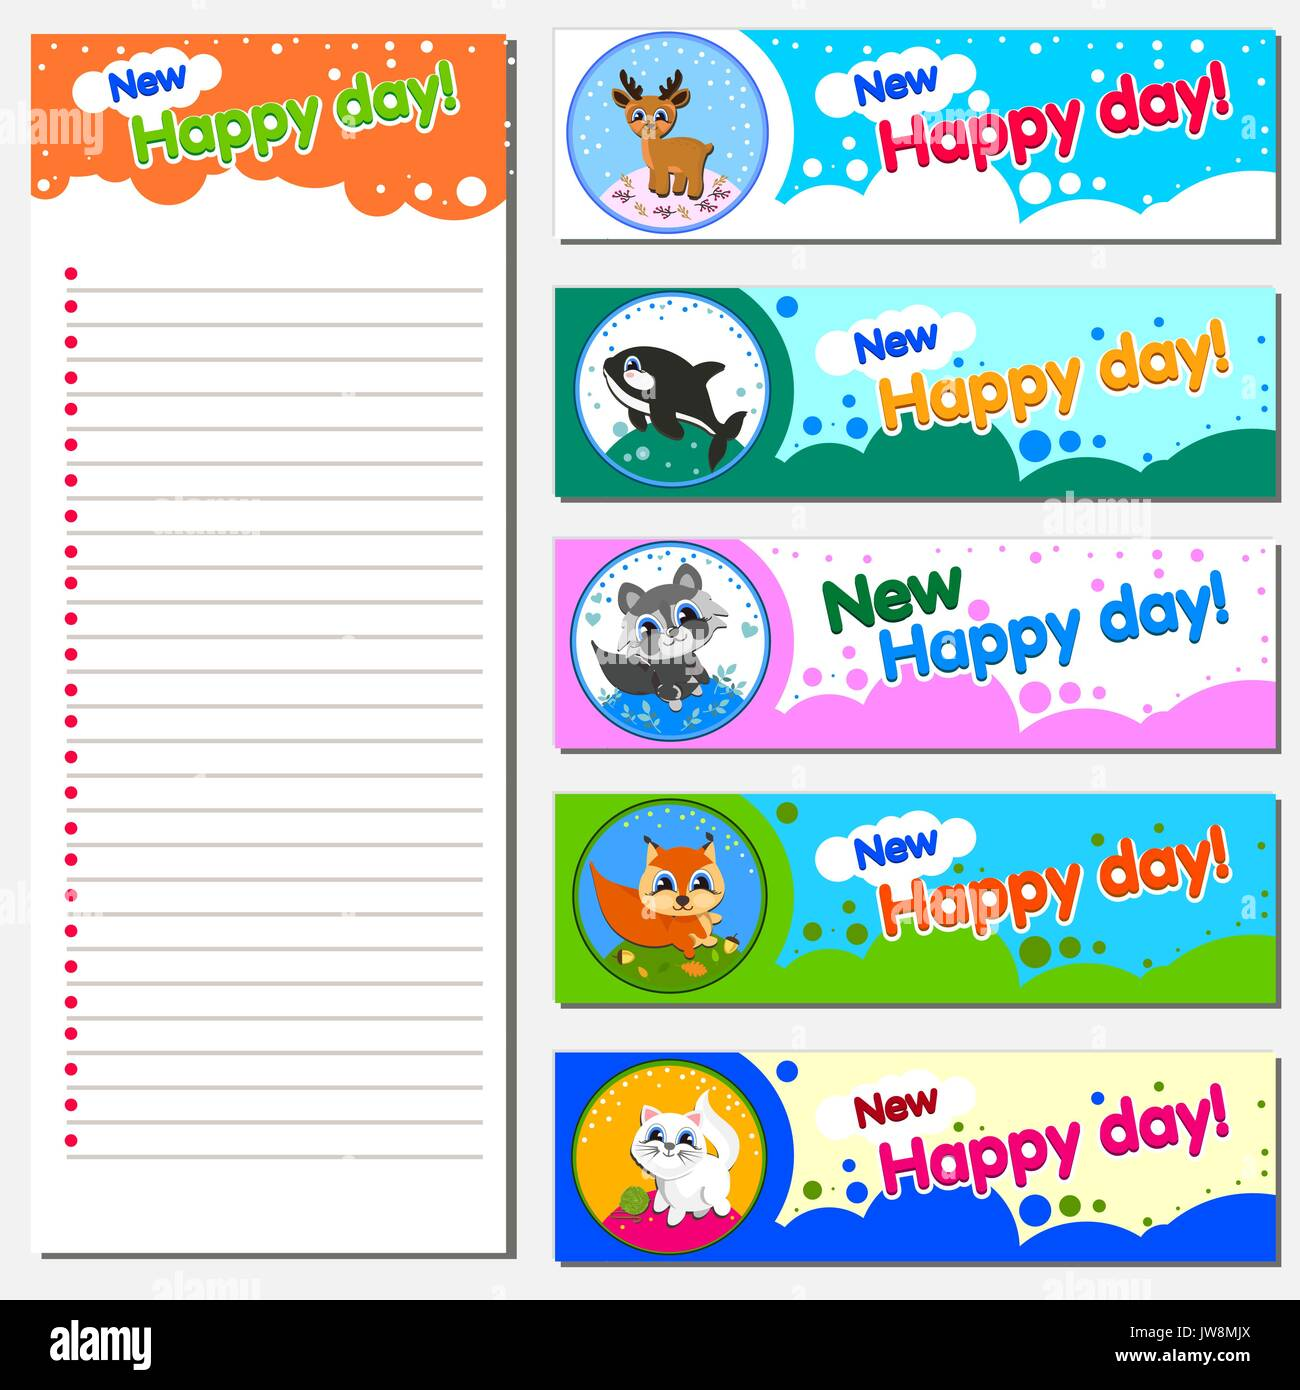 calendar planner 2018 design template with replaceable banner illustration of cheerful animals children s theme